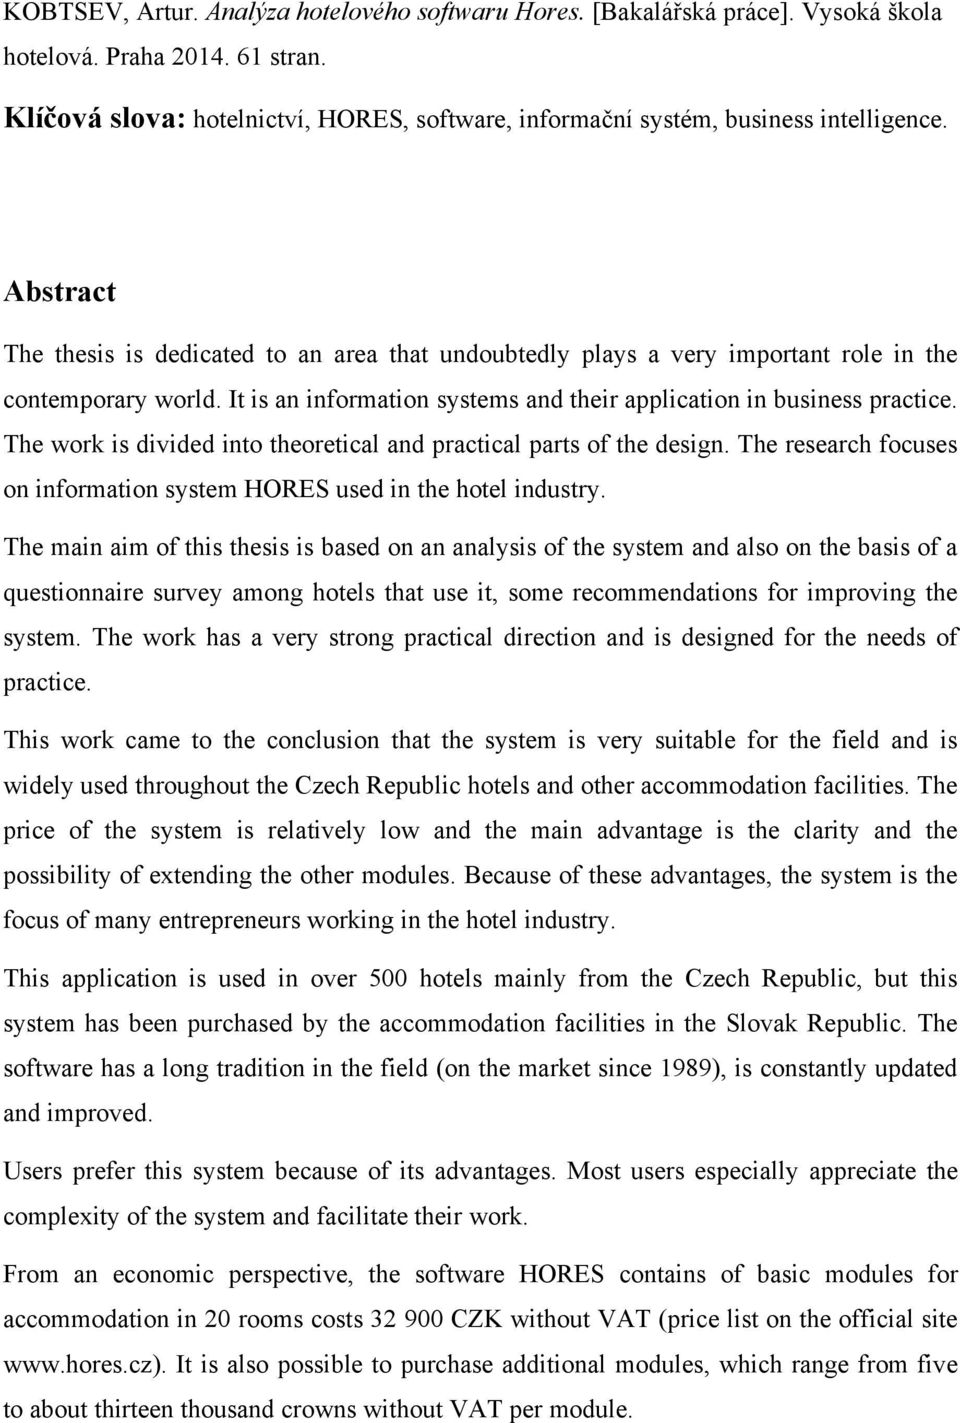 Abstract The thesis is dedicated to an area that undoubtedly plays a very important role in the contemporary world. It is an information systems and their application in business practice.